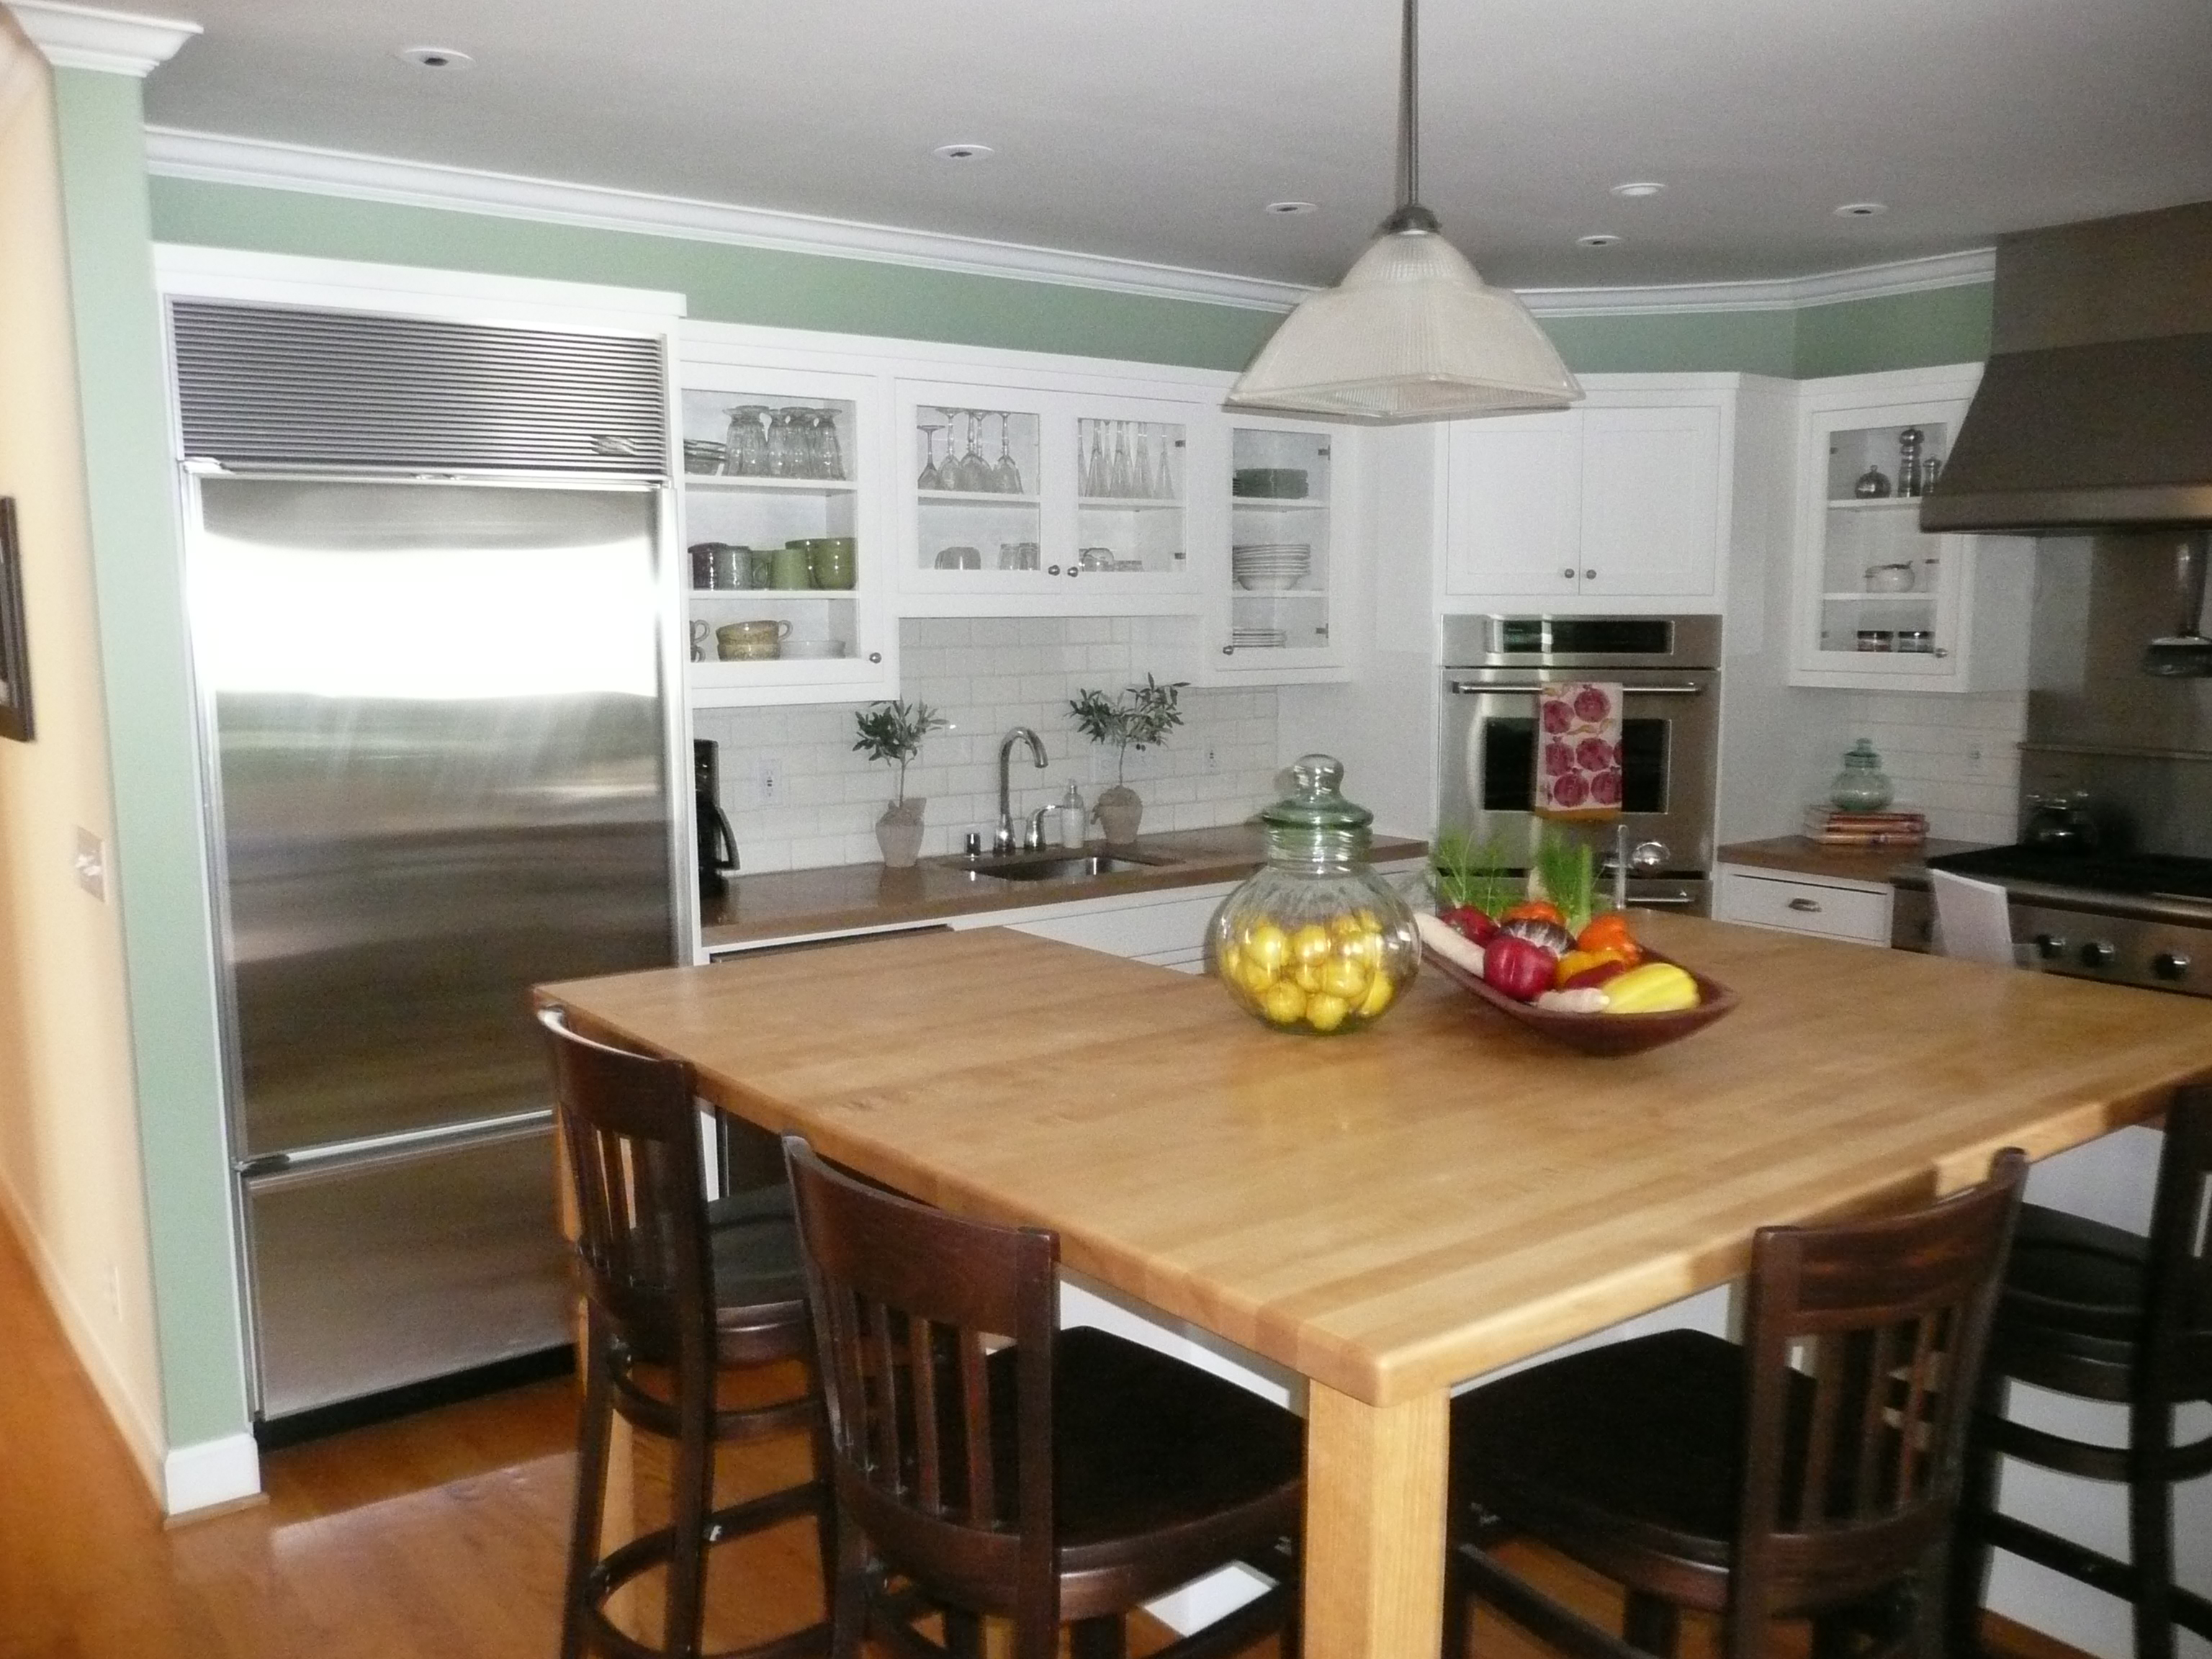 Having Fruits And Vegetables Displayed In A Feng Shui Kitchen Allows The Balancing Of Yin